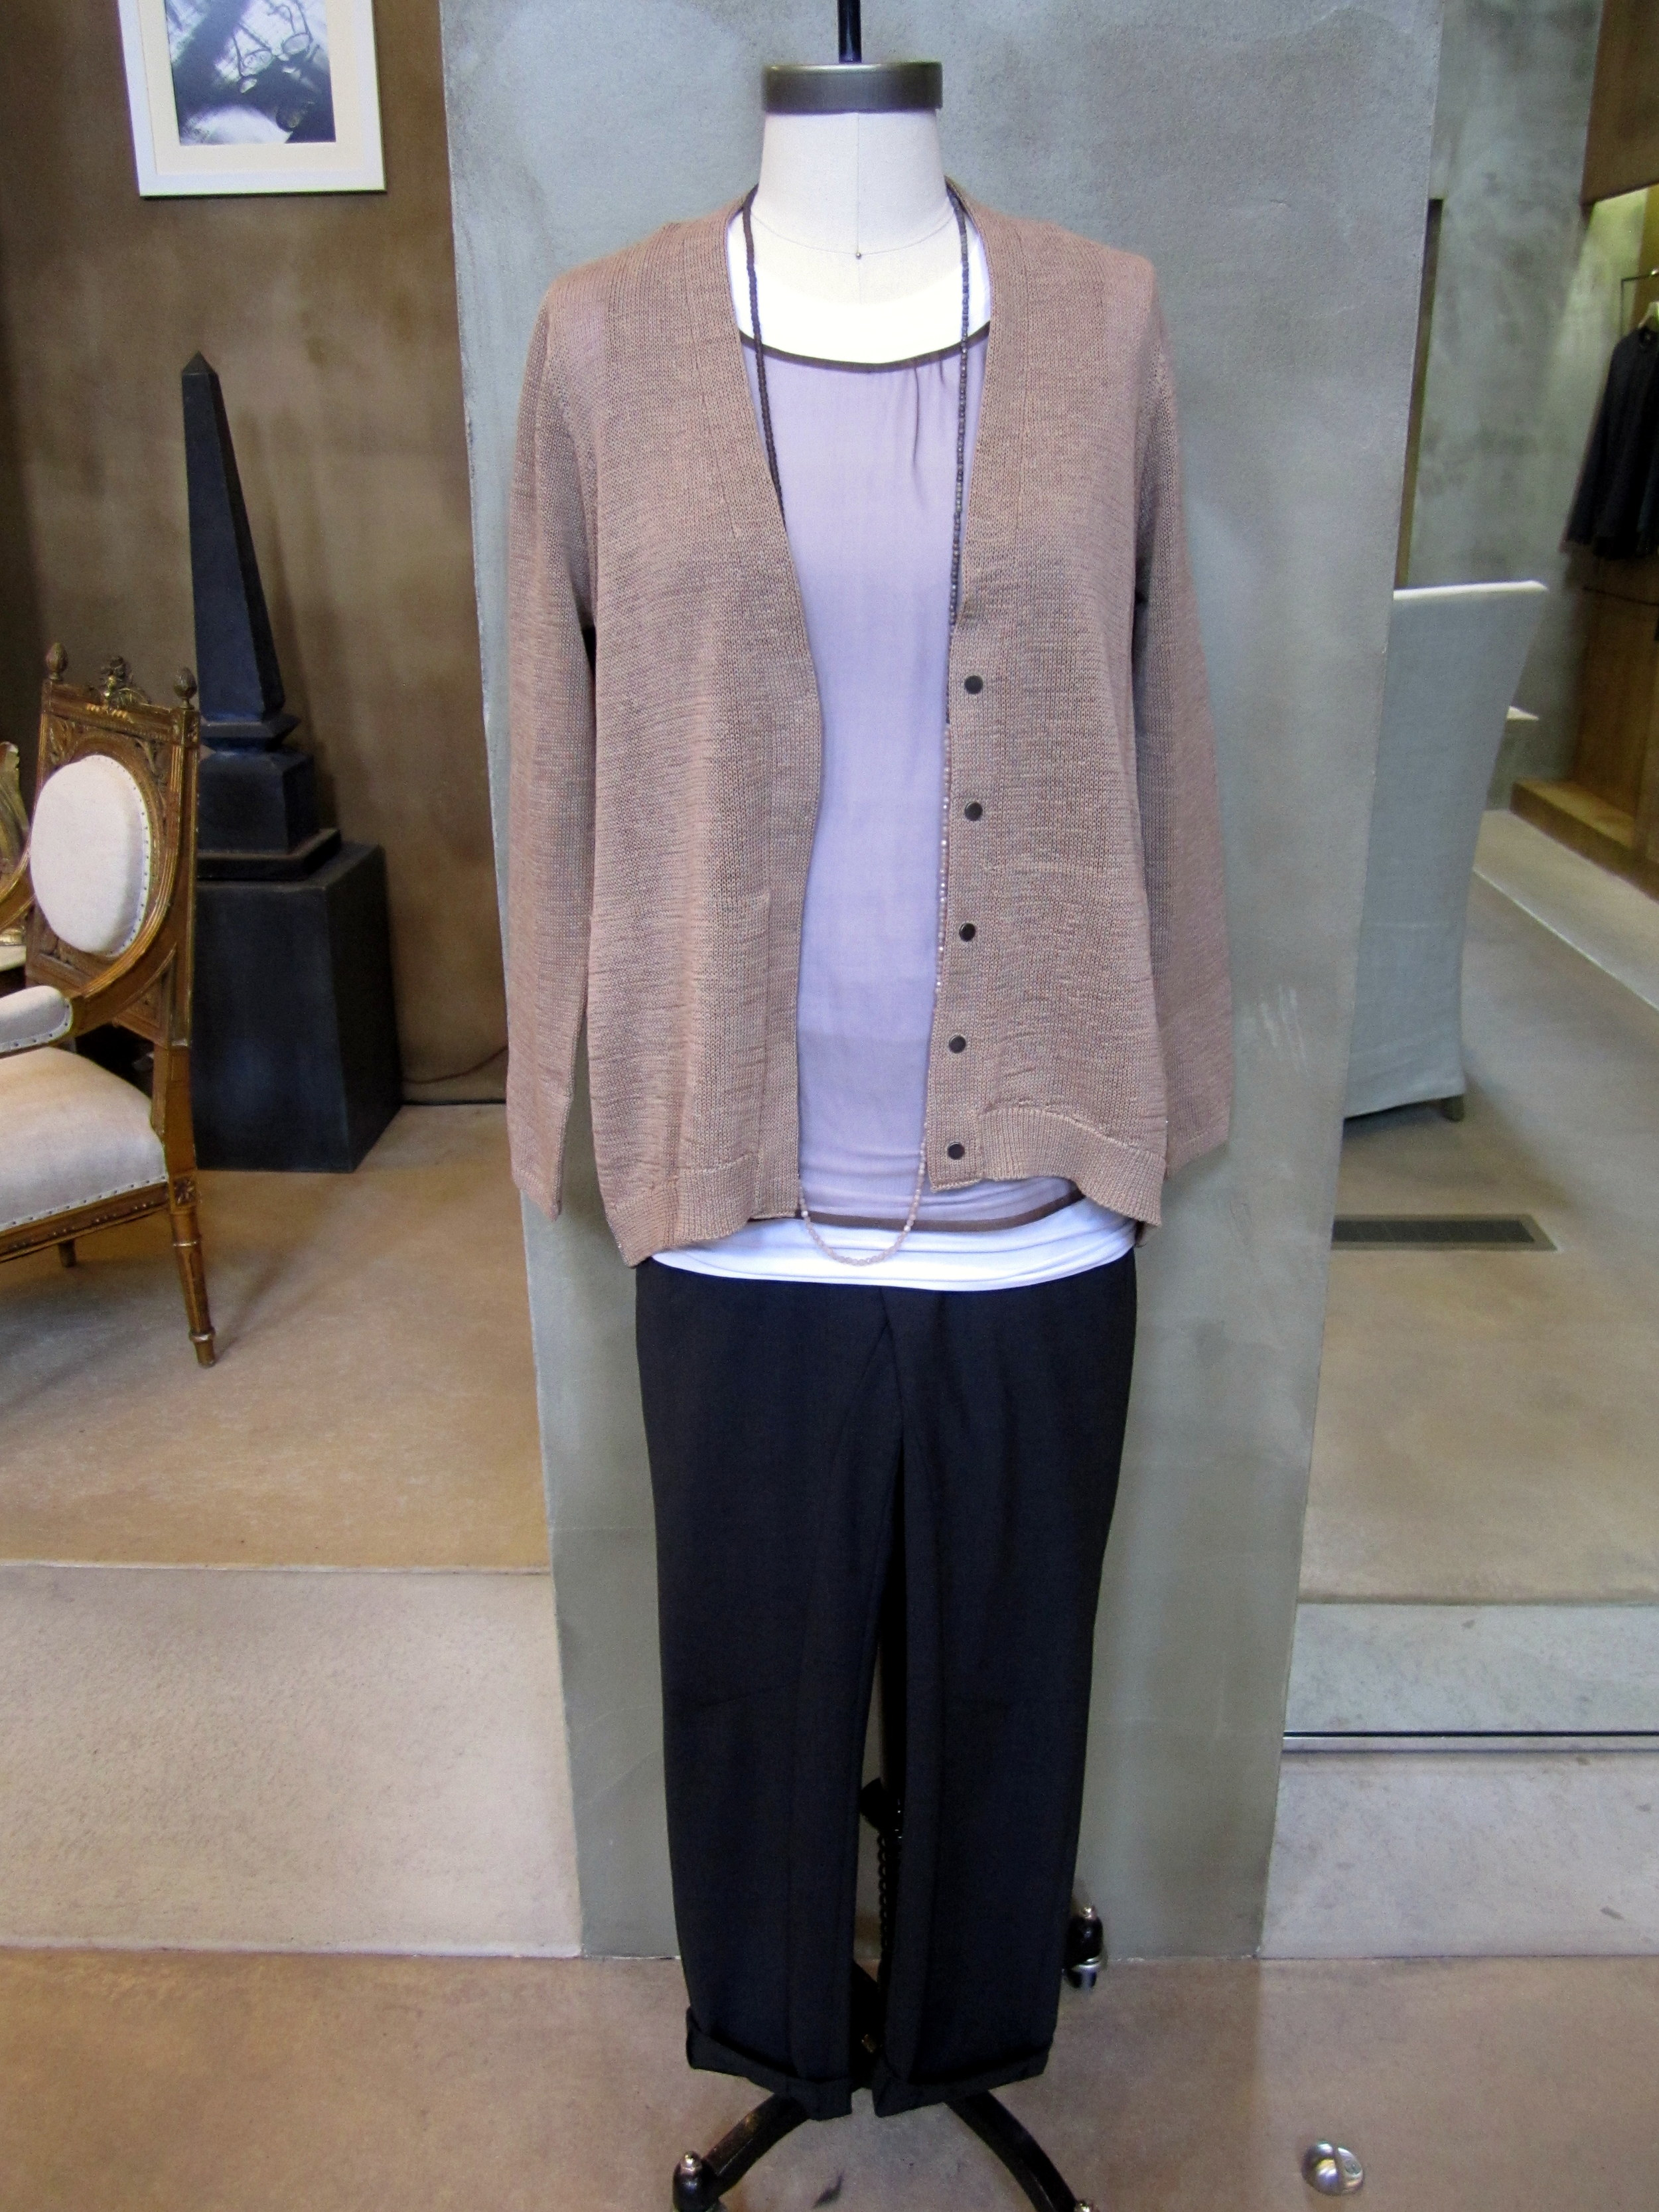 Brunello Cucinelli Silk Organza Shear Tank with Cotton T-Shirt Underneath. Chocolate / White. $835. Available in Small, Medium, Large. Dry Cotton Long Sleeve Monili Snap Front Cardigan. Biscotti. $1335. Medium, Large and X-Large. Light Weight Wool Seamed Pant. Anthracite. Available in 4, 6, and 8. Long Necklace. $725. Made in Italy.